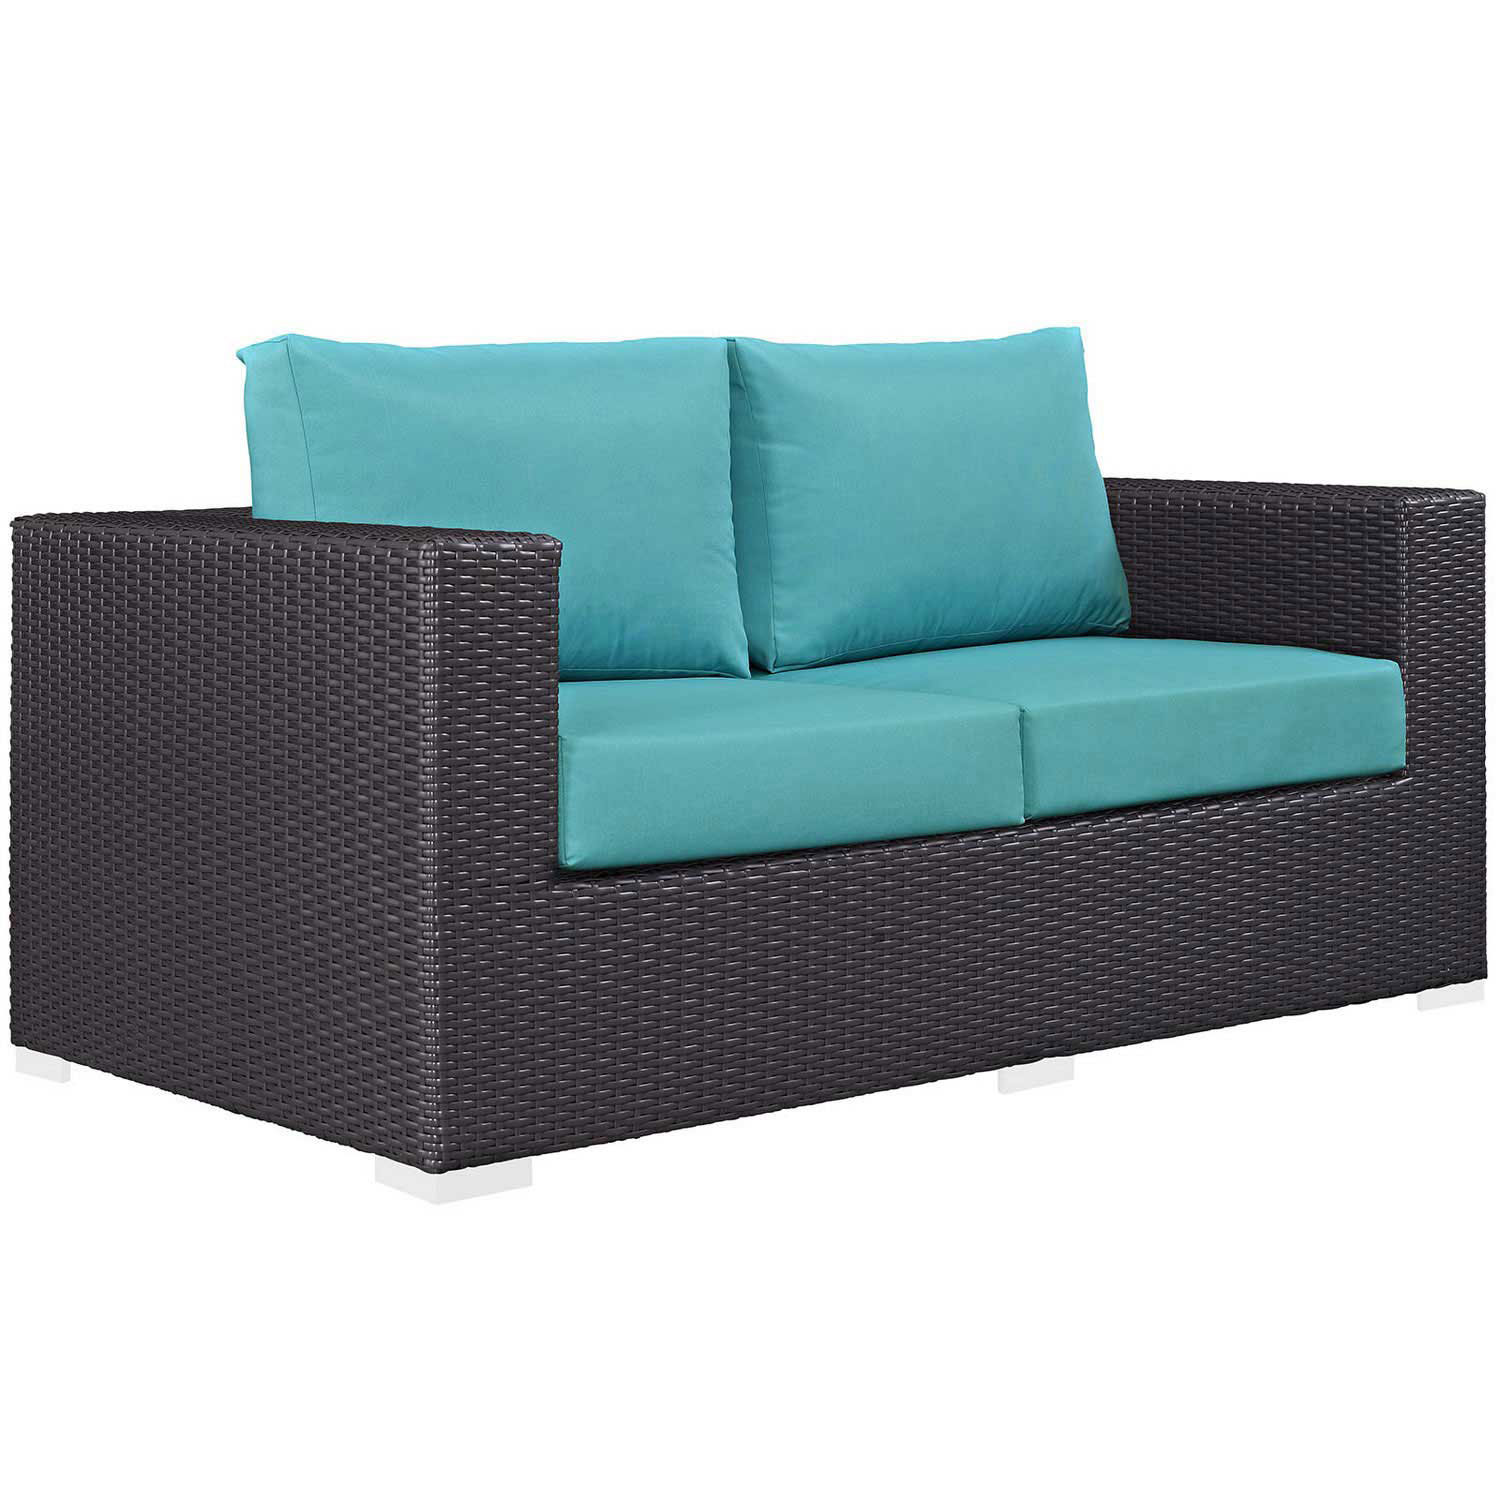 Modway Convene Outdoor Patio Loveseat Espresso Turquoise Mw Eei 1907 Exp Trq At